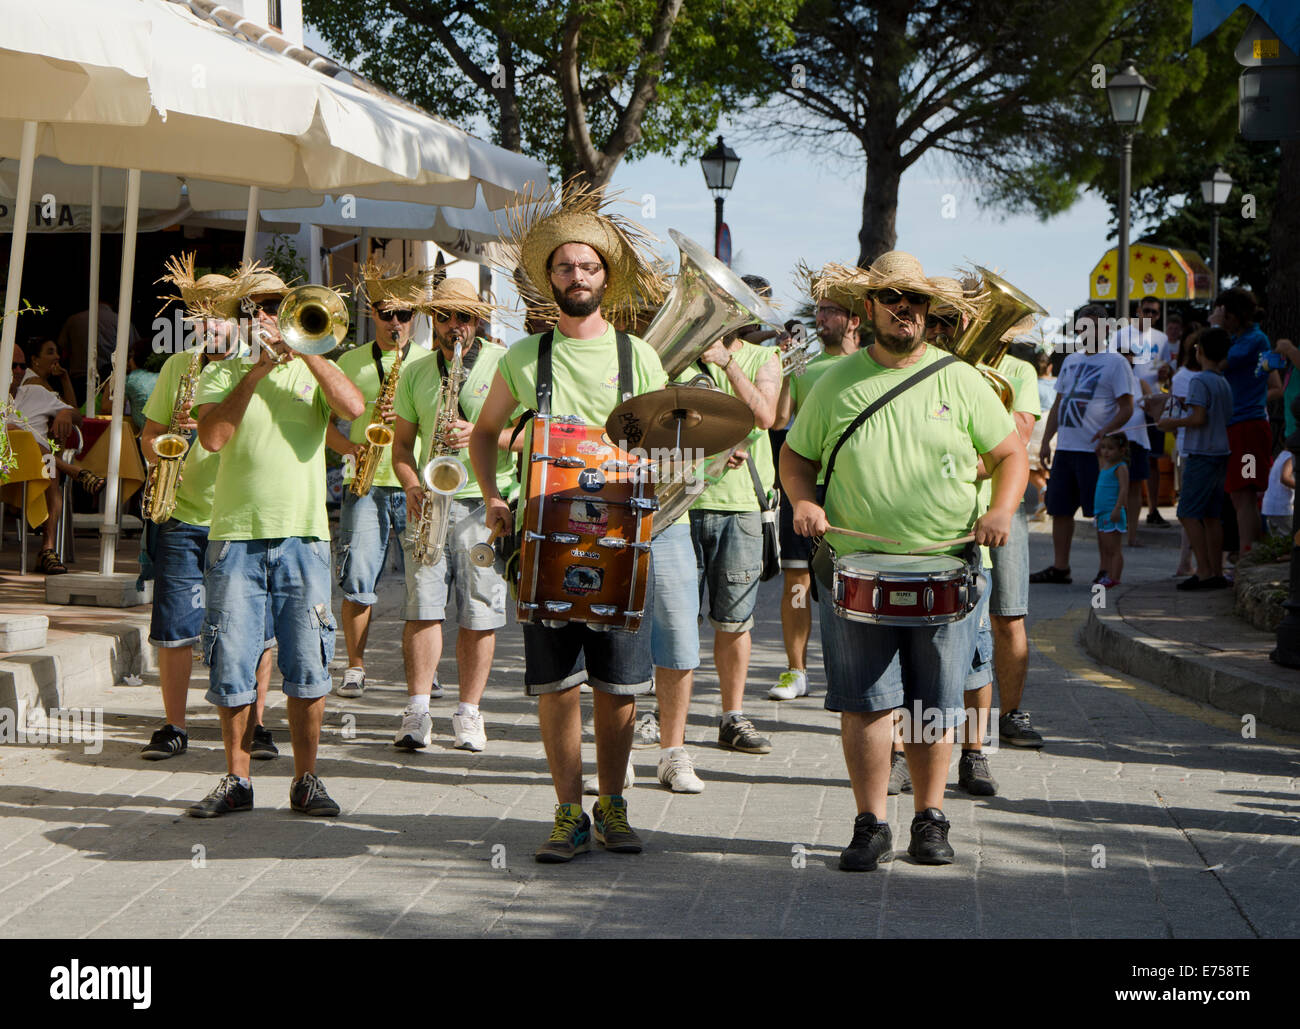 Informal marching Sreet band during the Feria of Mijas in Southern Spain - Stock Image